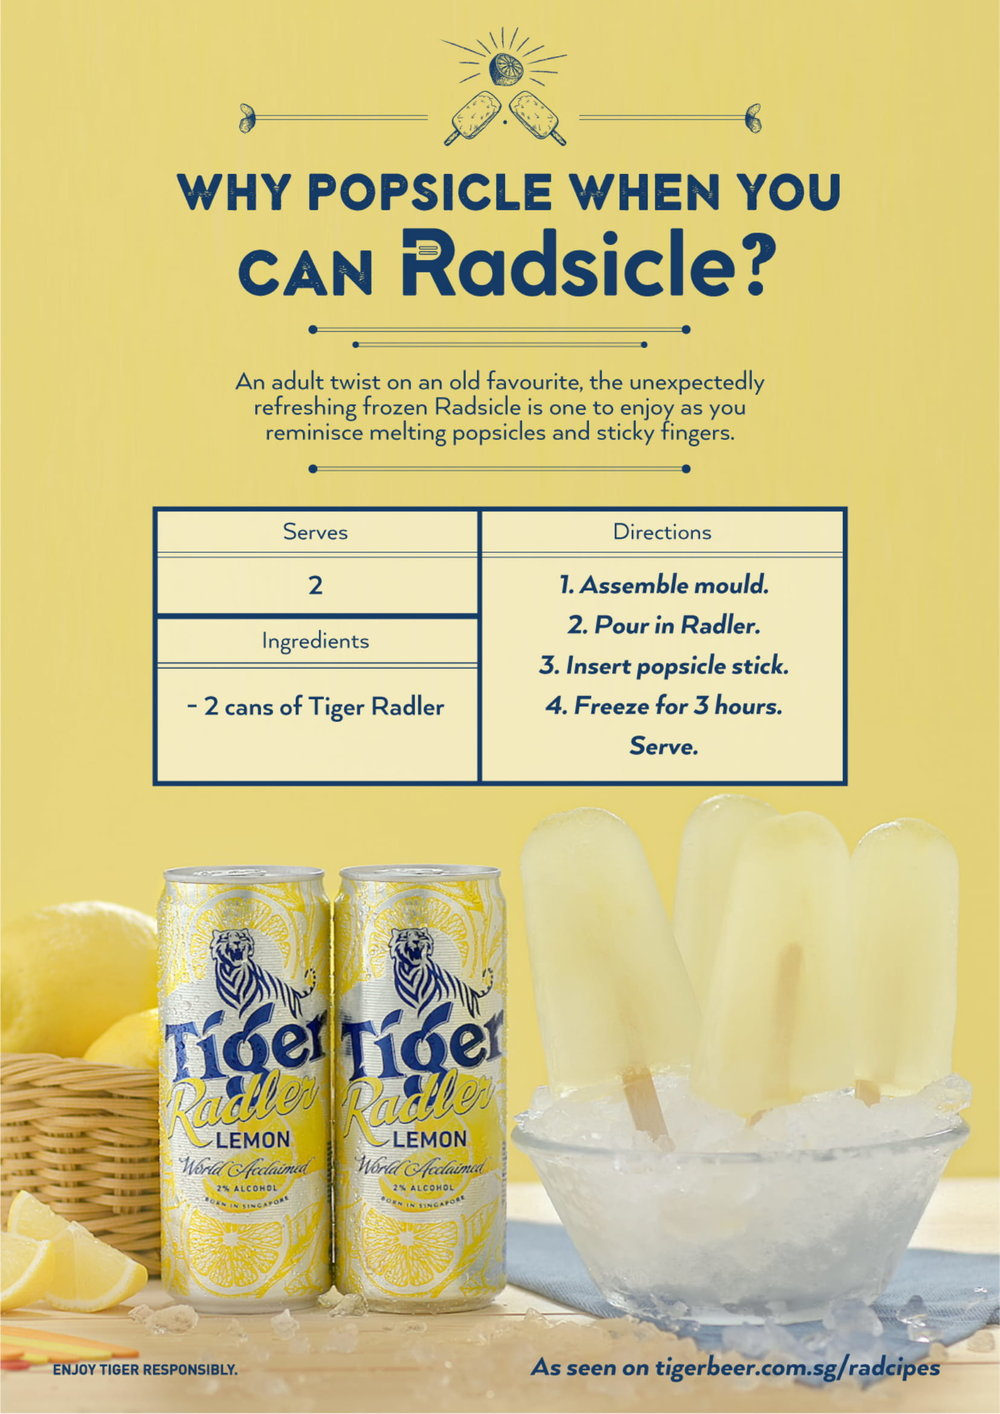 Tiger Radler Radcipes_eBook_20180418_final-5.jpg